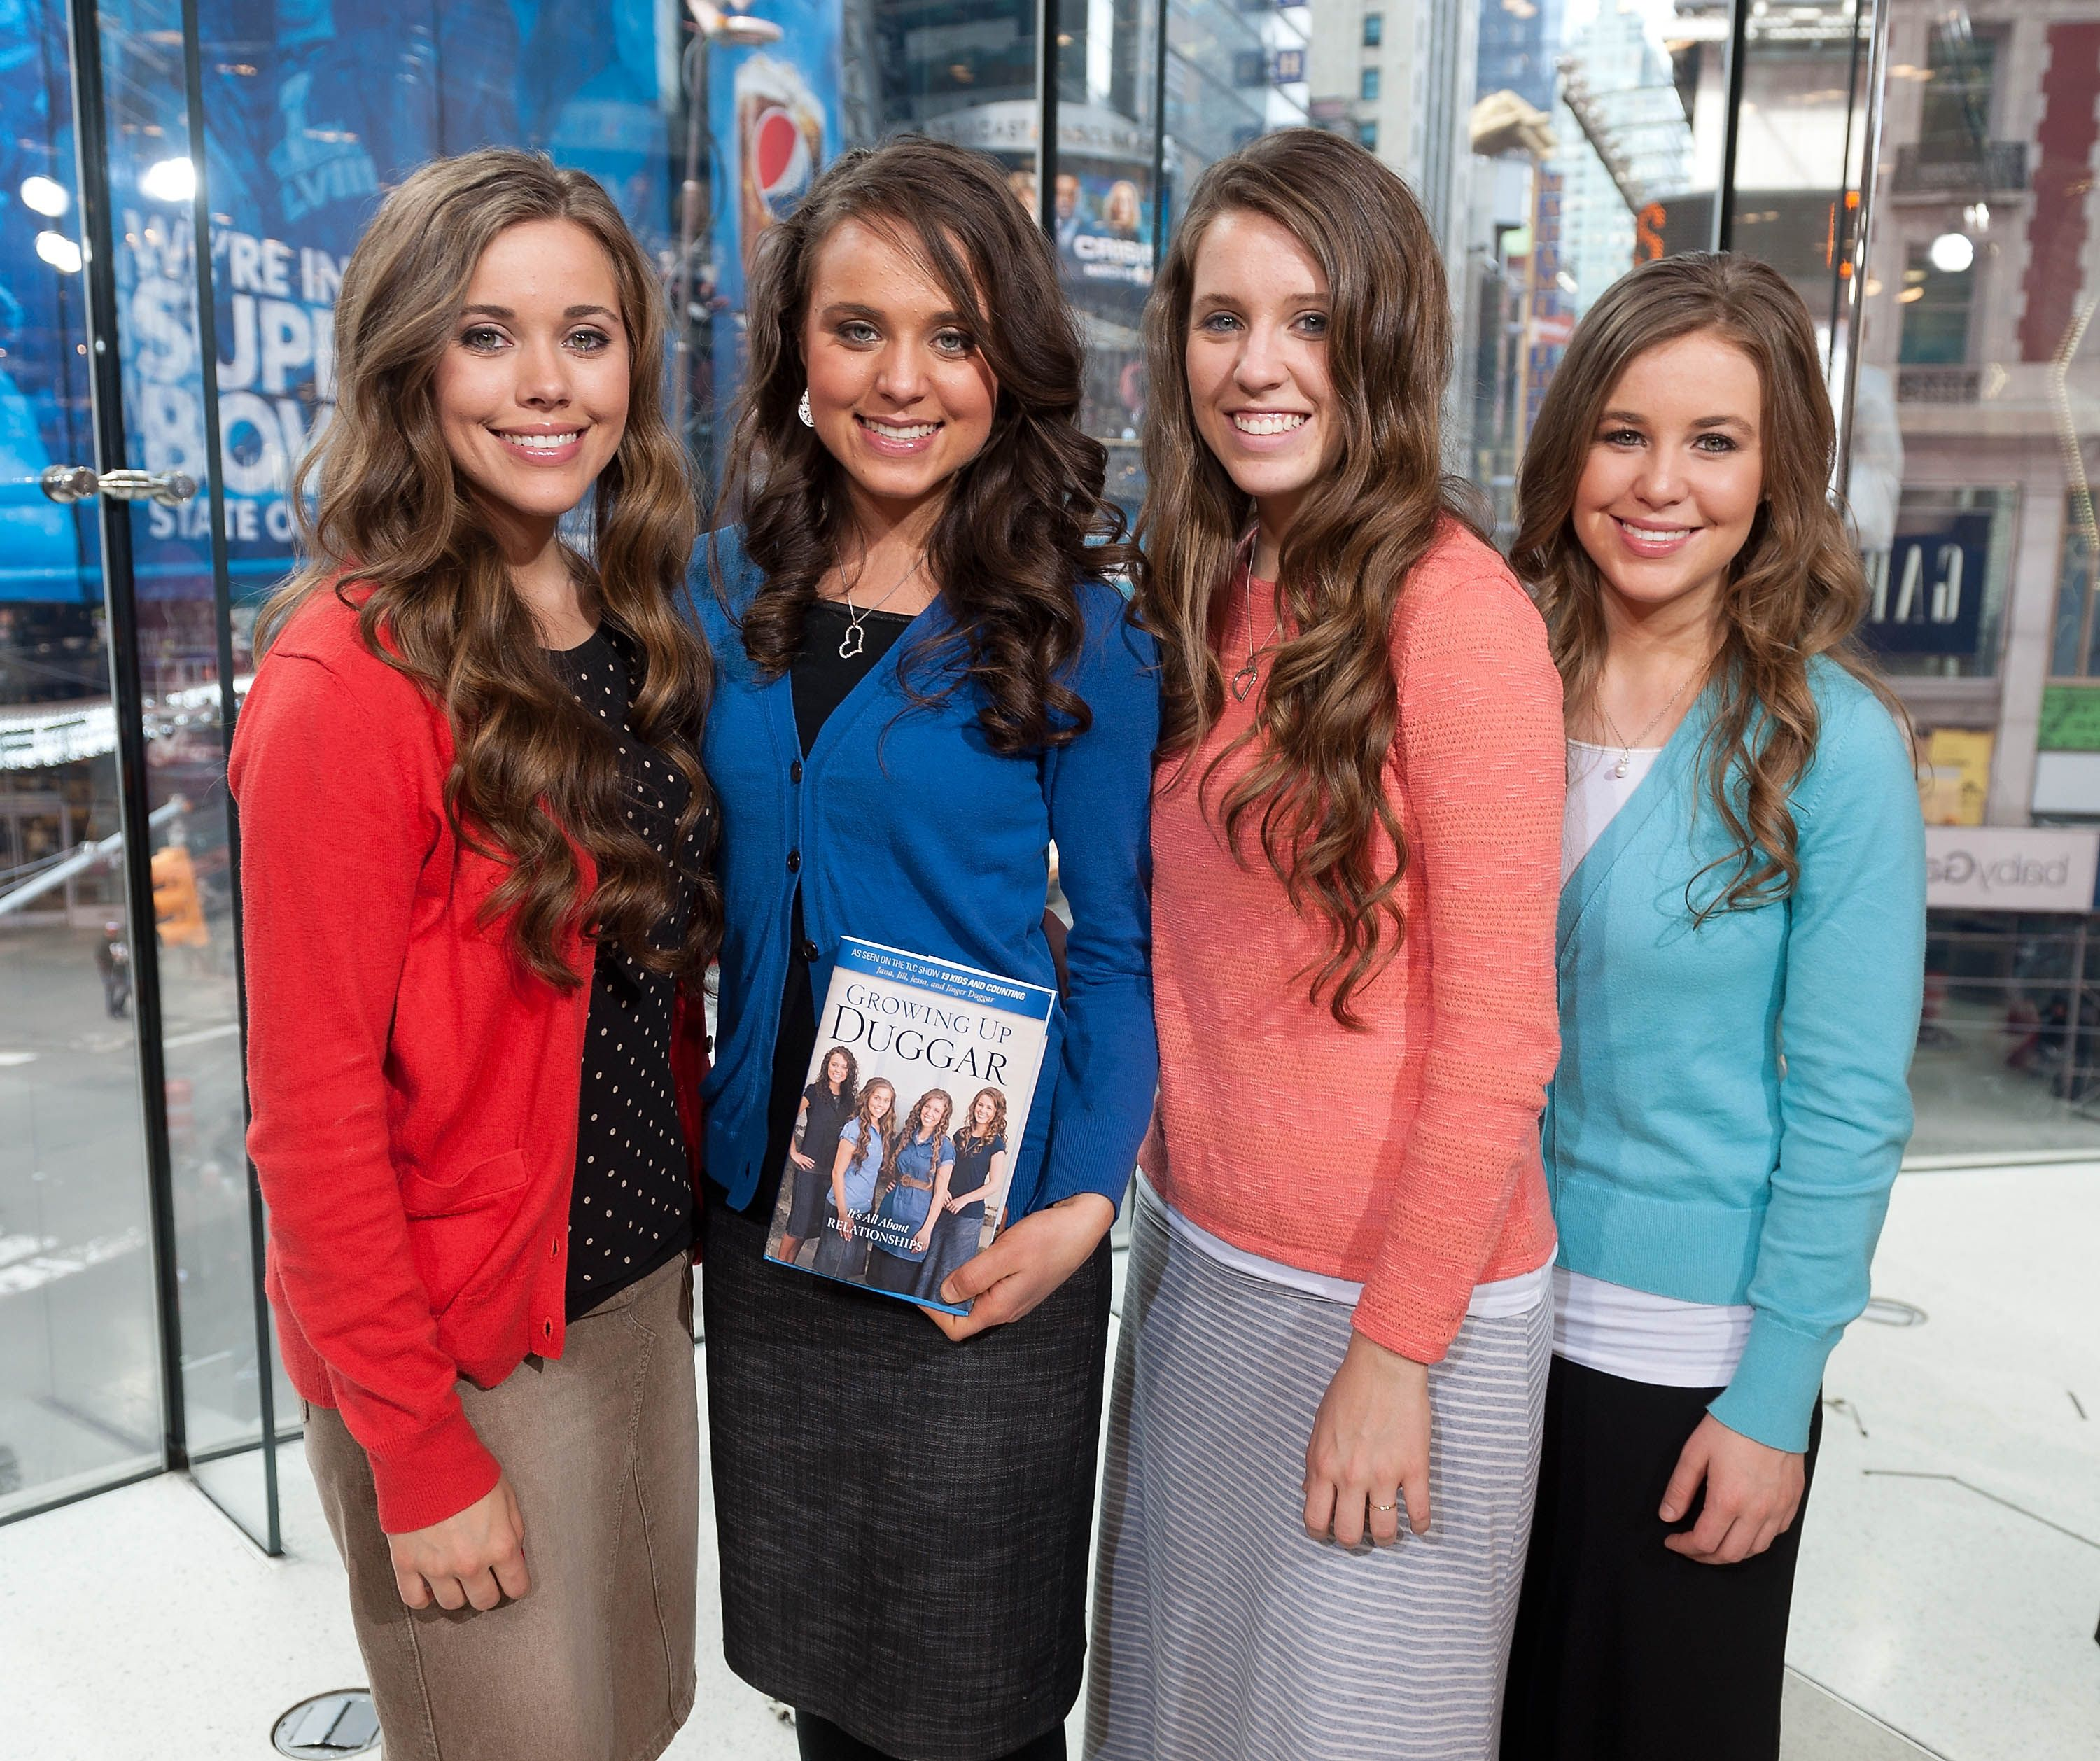 Duggar sisters promoting their book on TV